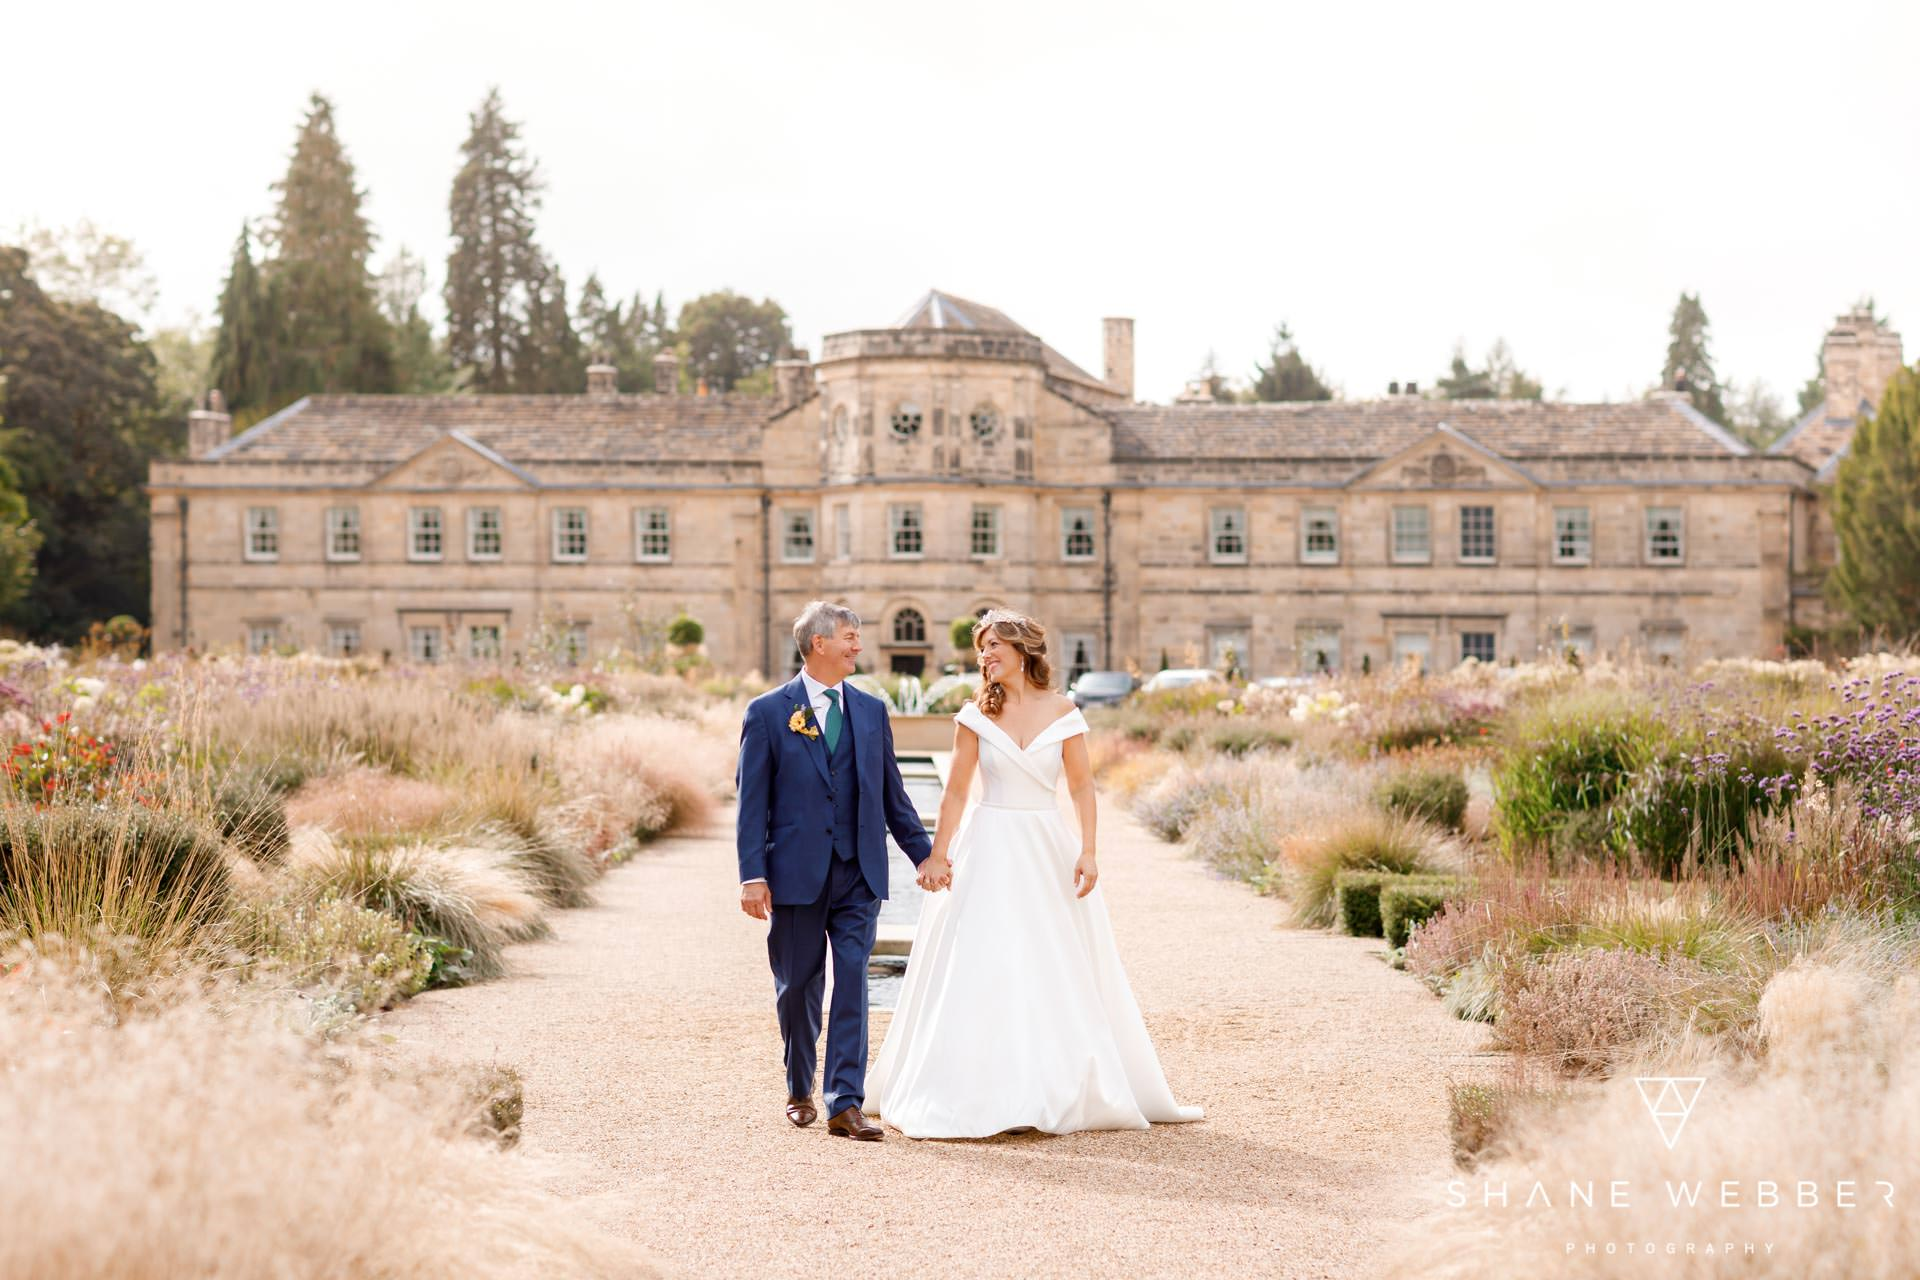 Top wedding planners in Cheshire